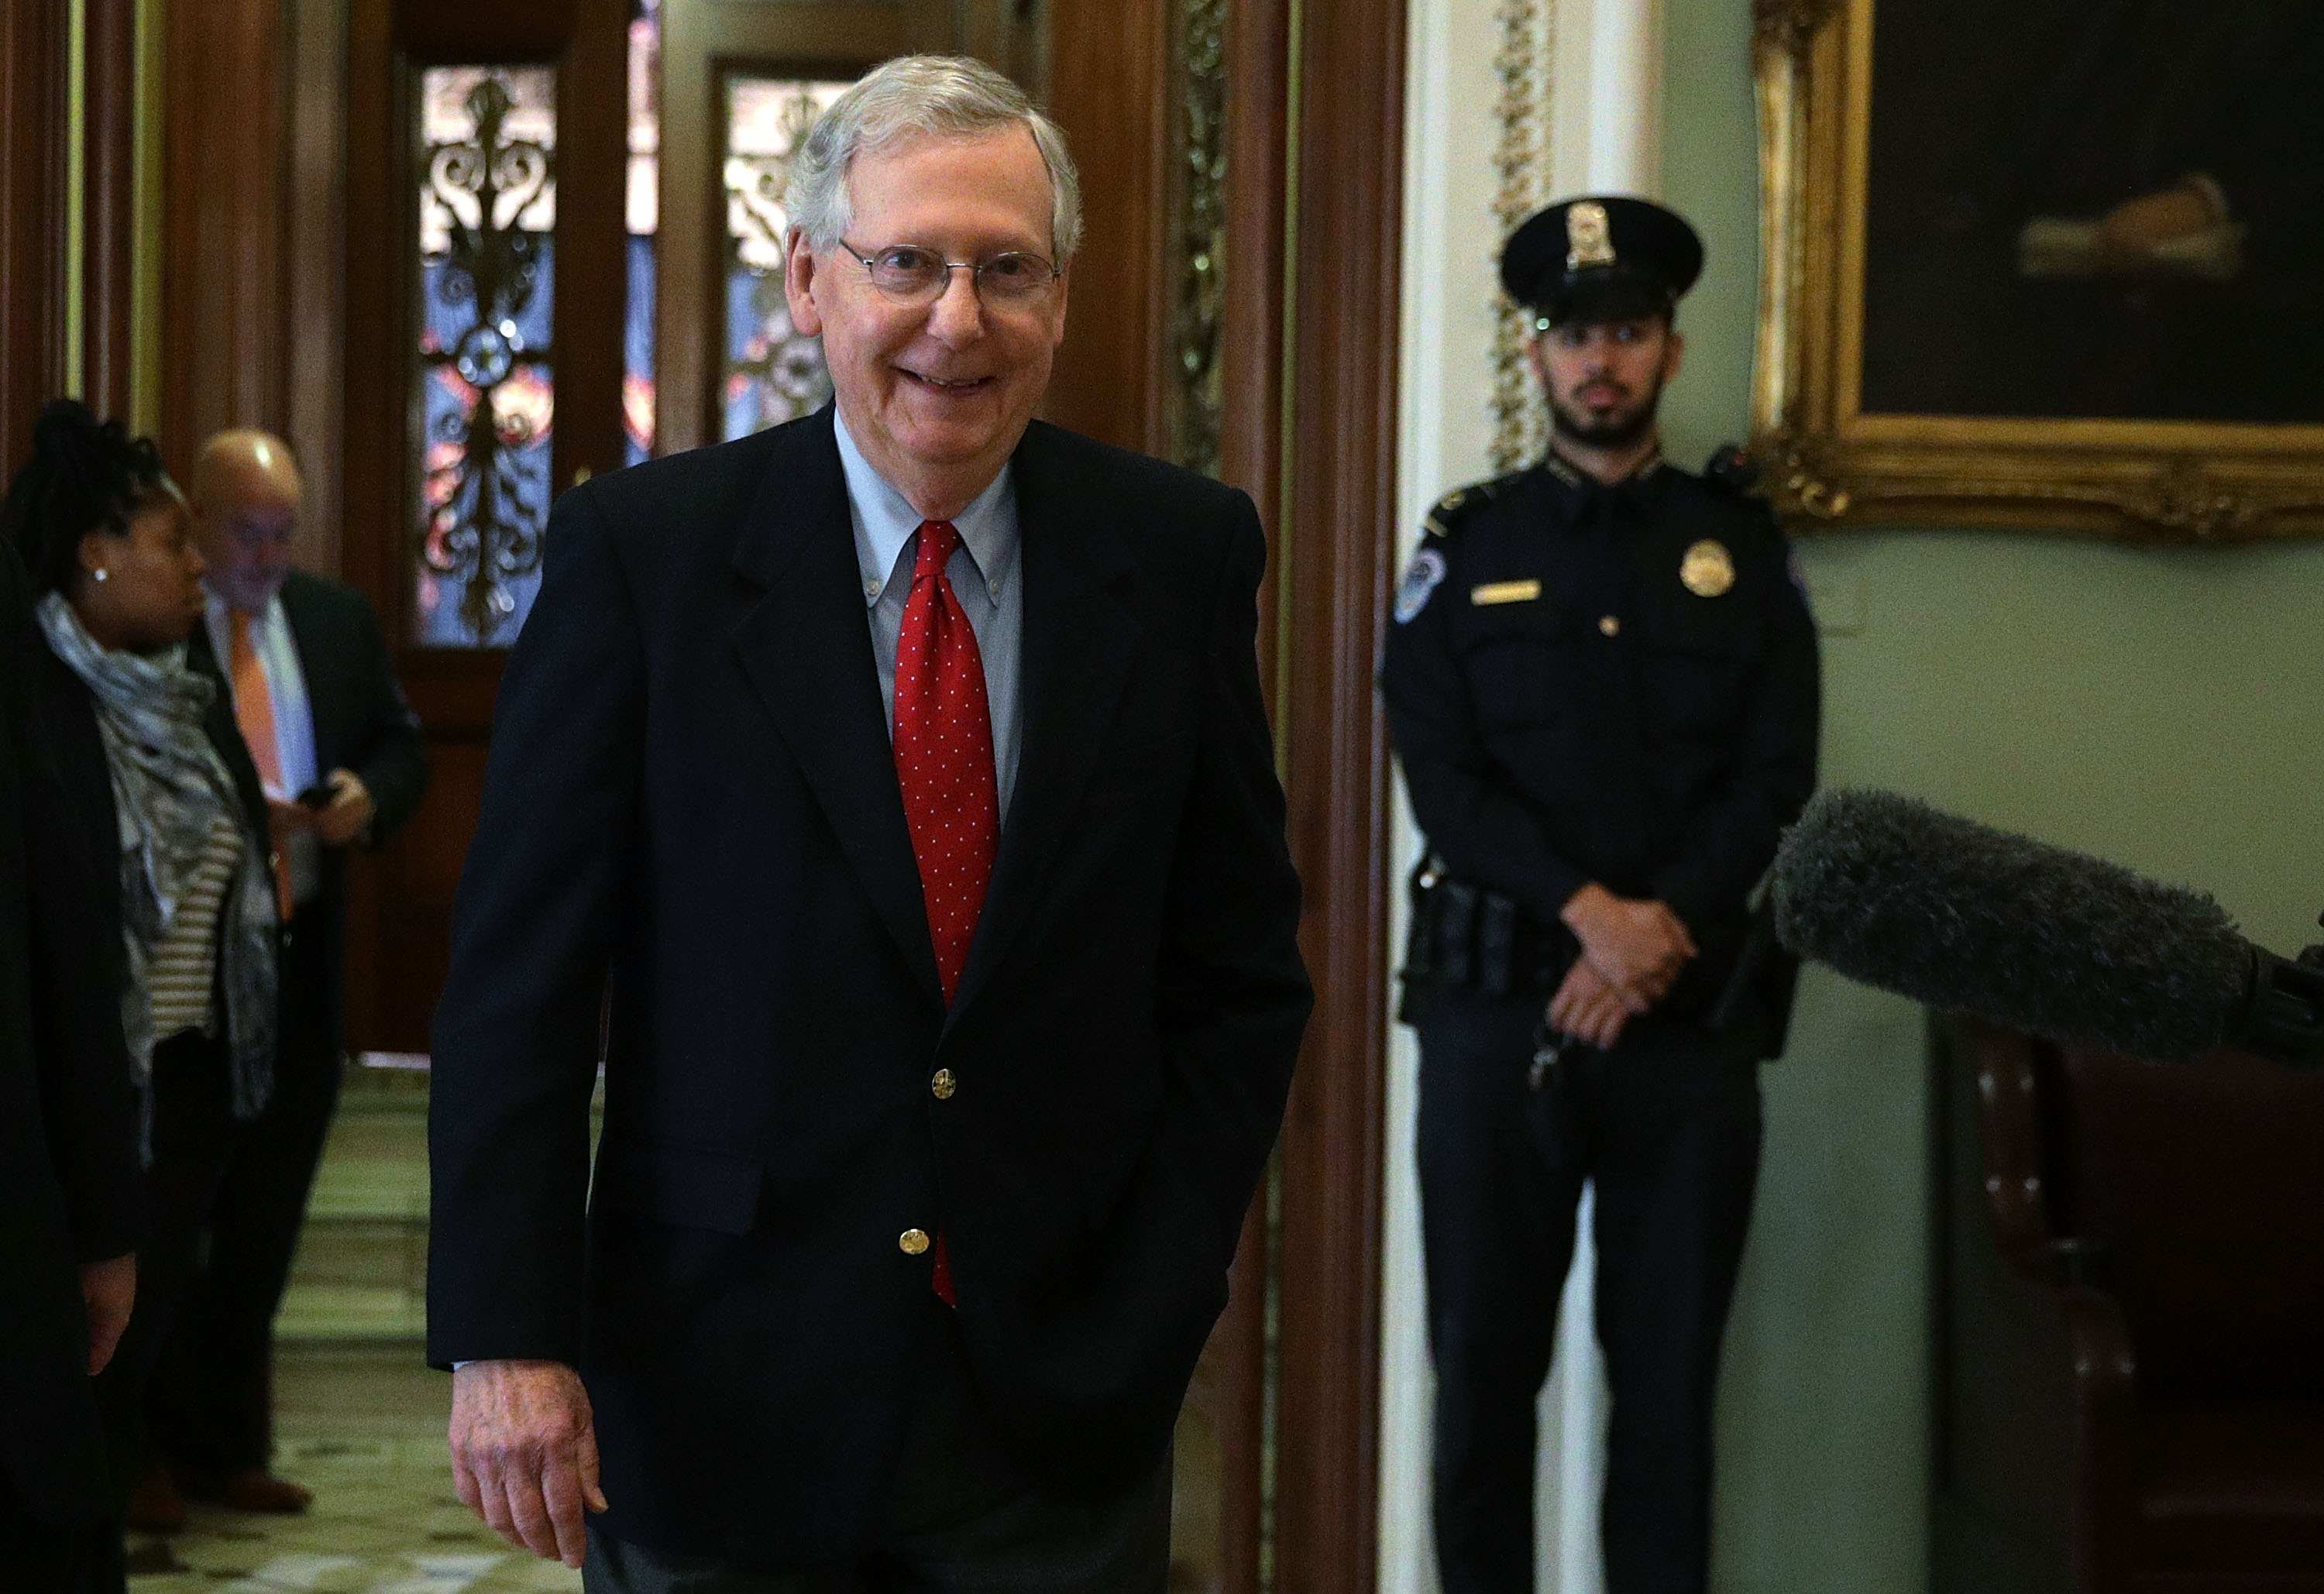 WASHINGTON, DC - DECEMBER 01:  U.S. Senate Majority Leader Sen. Mitch McConnell (R-KY) walks from the Senate chamber to his office December 1, 2017 at the Capitol in Washington, DC. Senate GOPs indicate that they have enough votes to pass the tax reform bill.  (Photo by Alex Wong/Getty Images)